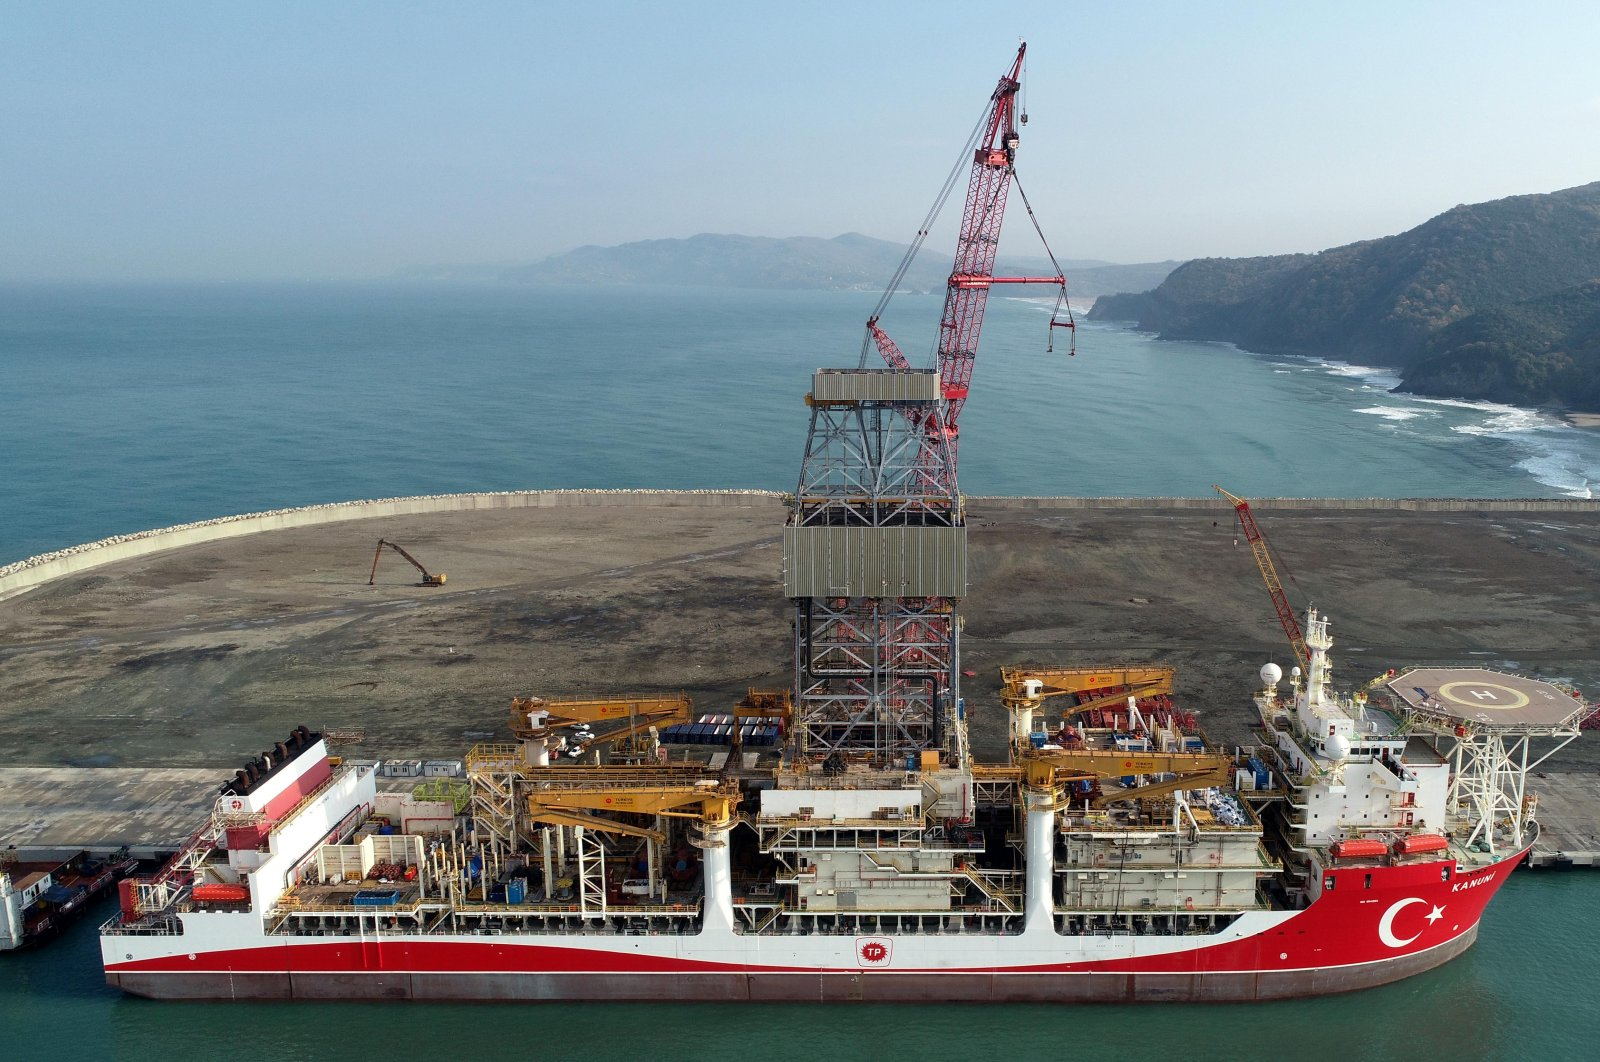 The Kanuni drillship is seen docked at Filyos port before setting sail for drilling activities in the Black Sea, Zonguldak province, northern Turkey, Jan. 25, 2021. (DHA Photo)